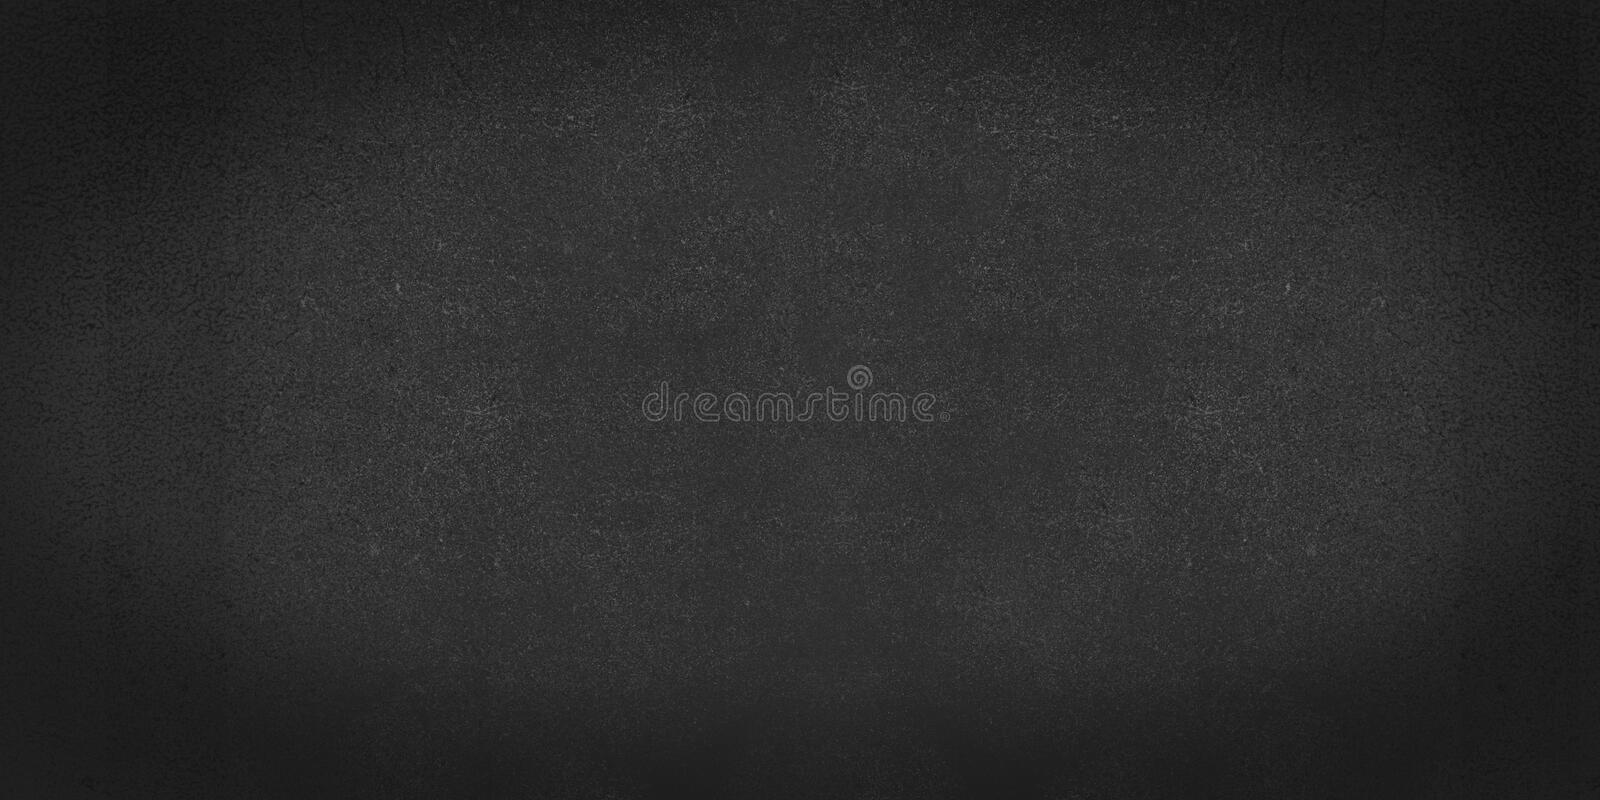 Black abstract shabby textured background texture of old paper. Blank background design banner effect scratches. royalty free stock photos